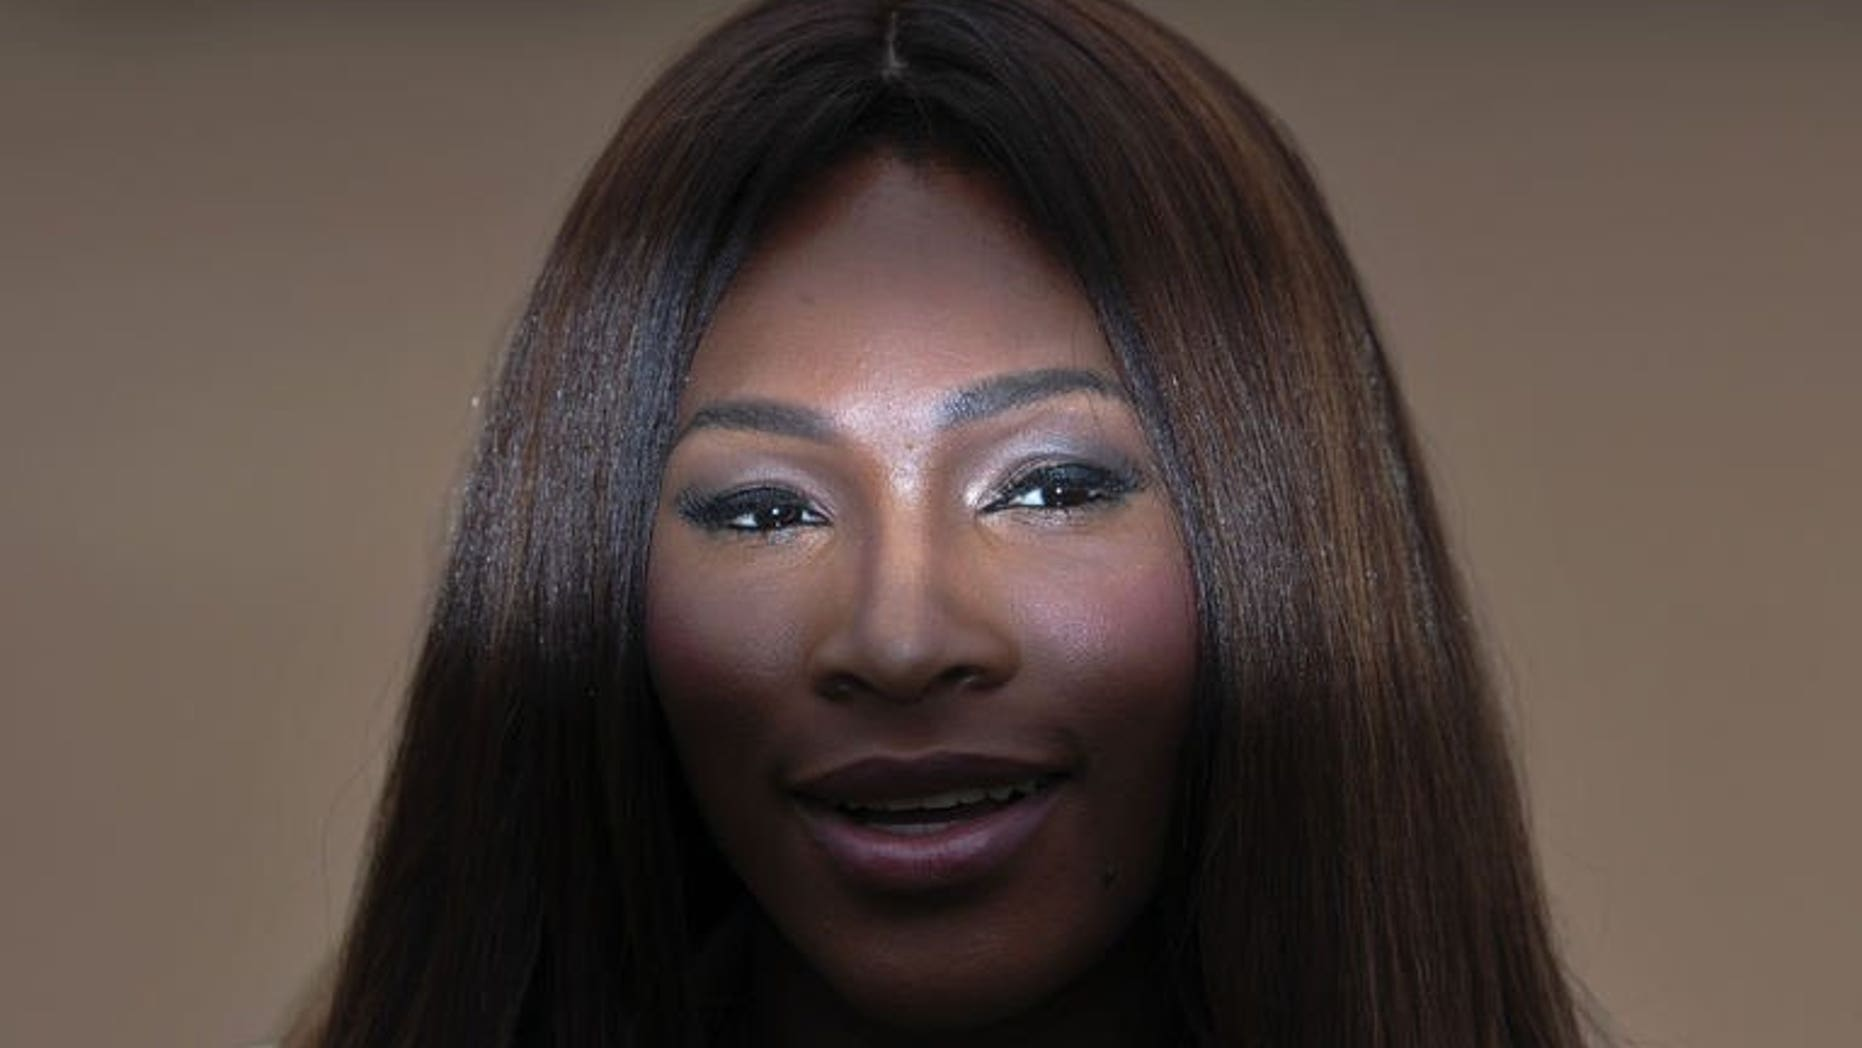 US tennis player Serena Williams poses for photographers as she arrives to attend the Burberry men's fashion show in London on June 18, 2013. Maria Sharapova has blasted Williams for the American's controversial comments over a high-profile rape case and even criticised the Wimbledon champion's private life.